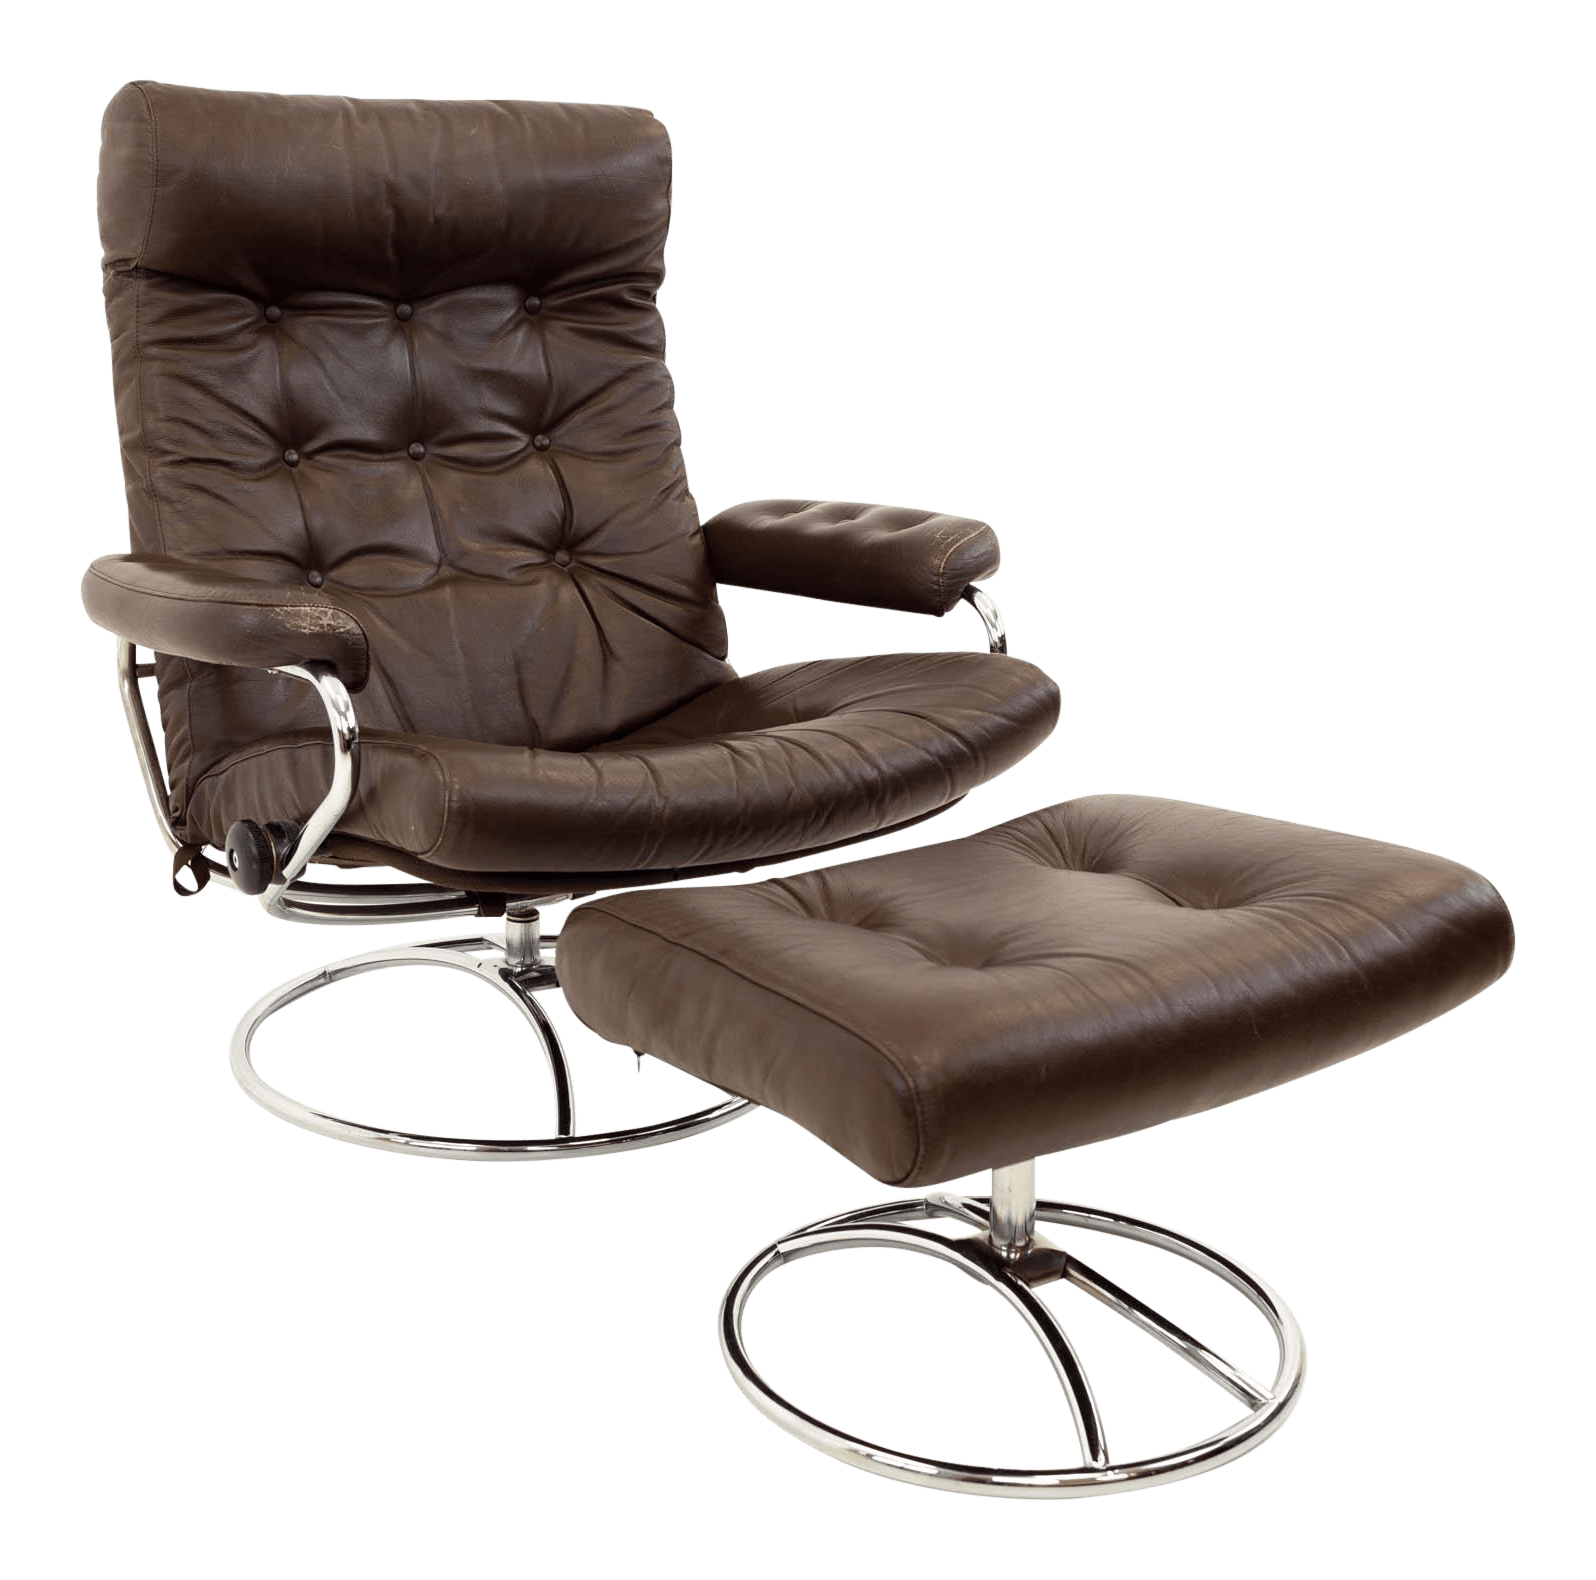 Chair Leather Reclining Swivel Mid Century Modern Ekornes Stressless Reclining Swivel Brown Leather Lounge Chair Ottoman